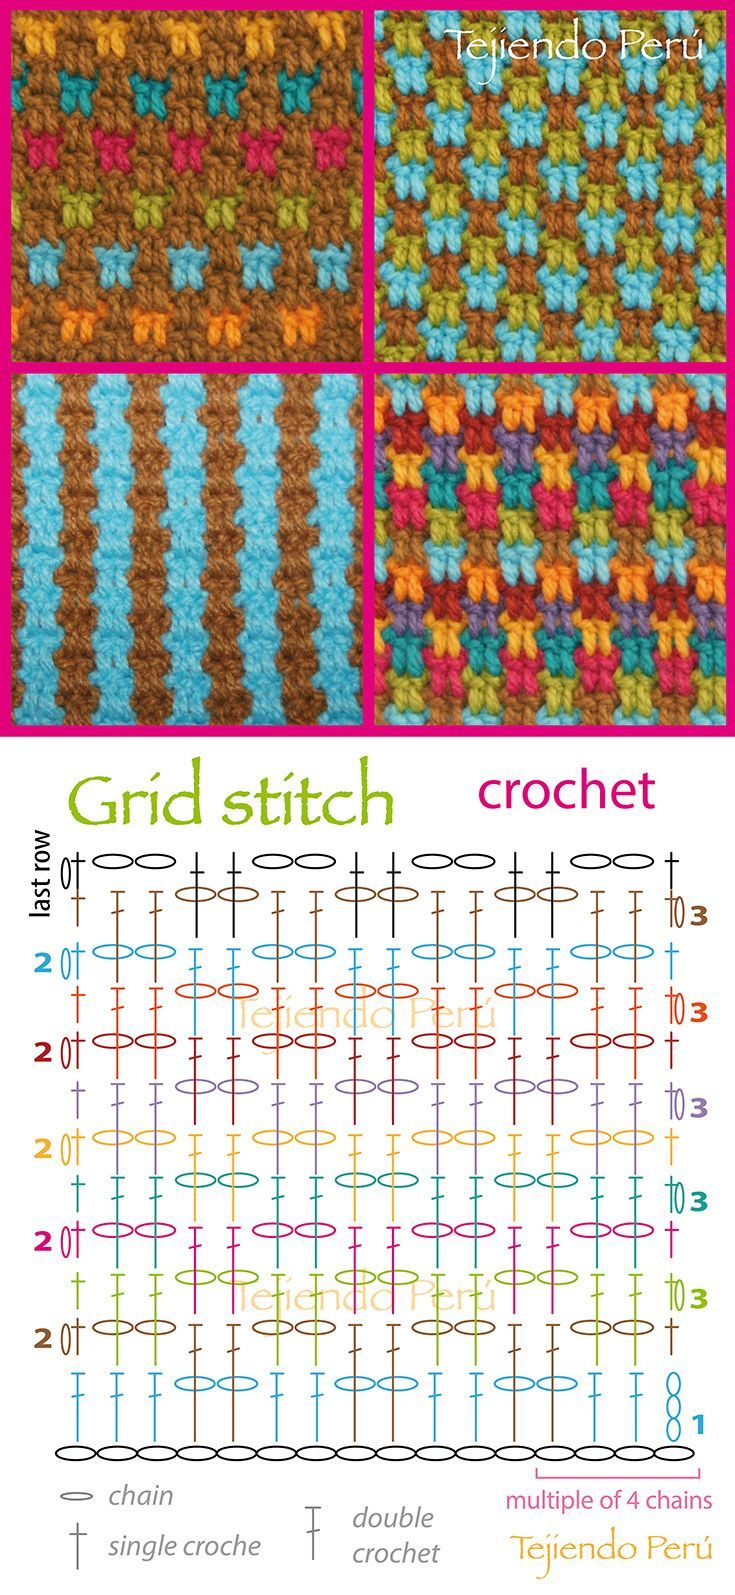 632a2f08g 7351595 muster pinterest crochet crochet crochet grid stitch pattern chart or diagram you can make a lot of combinations bankloansurffo Image collections